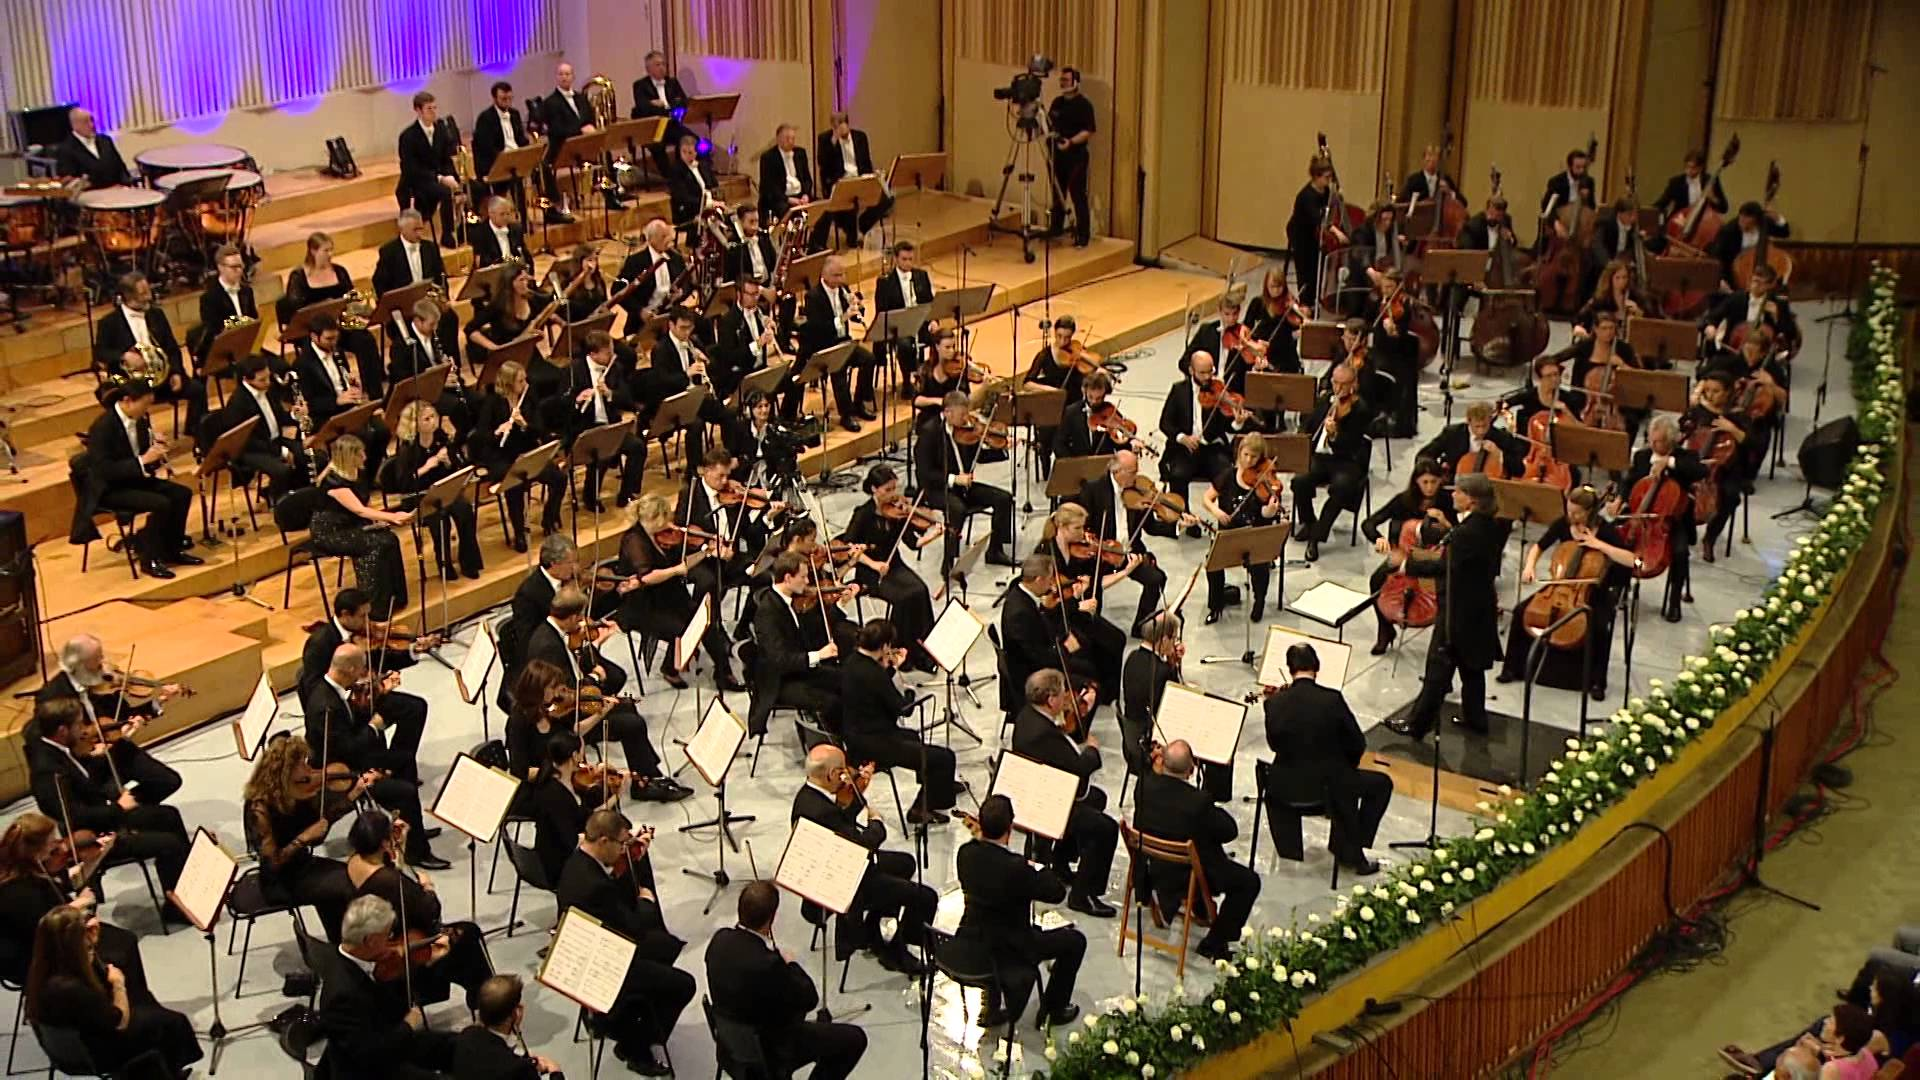 London Symphony Orchestra to perform in Hanoi